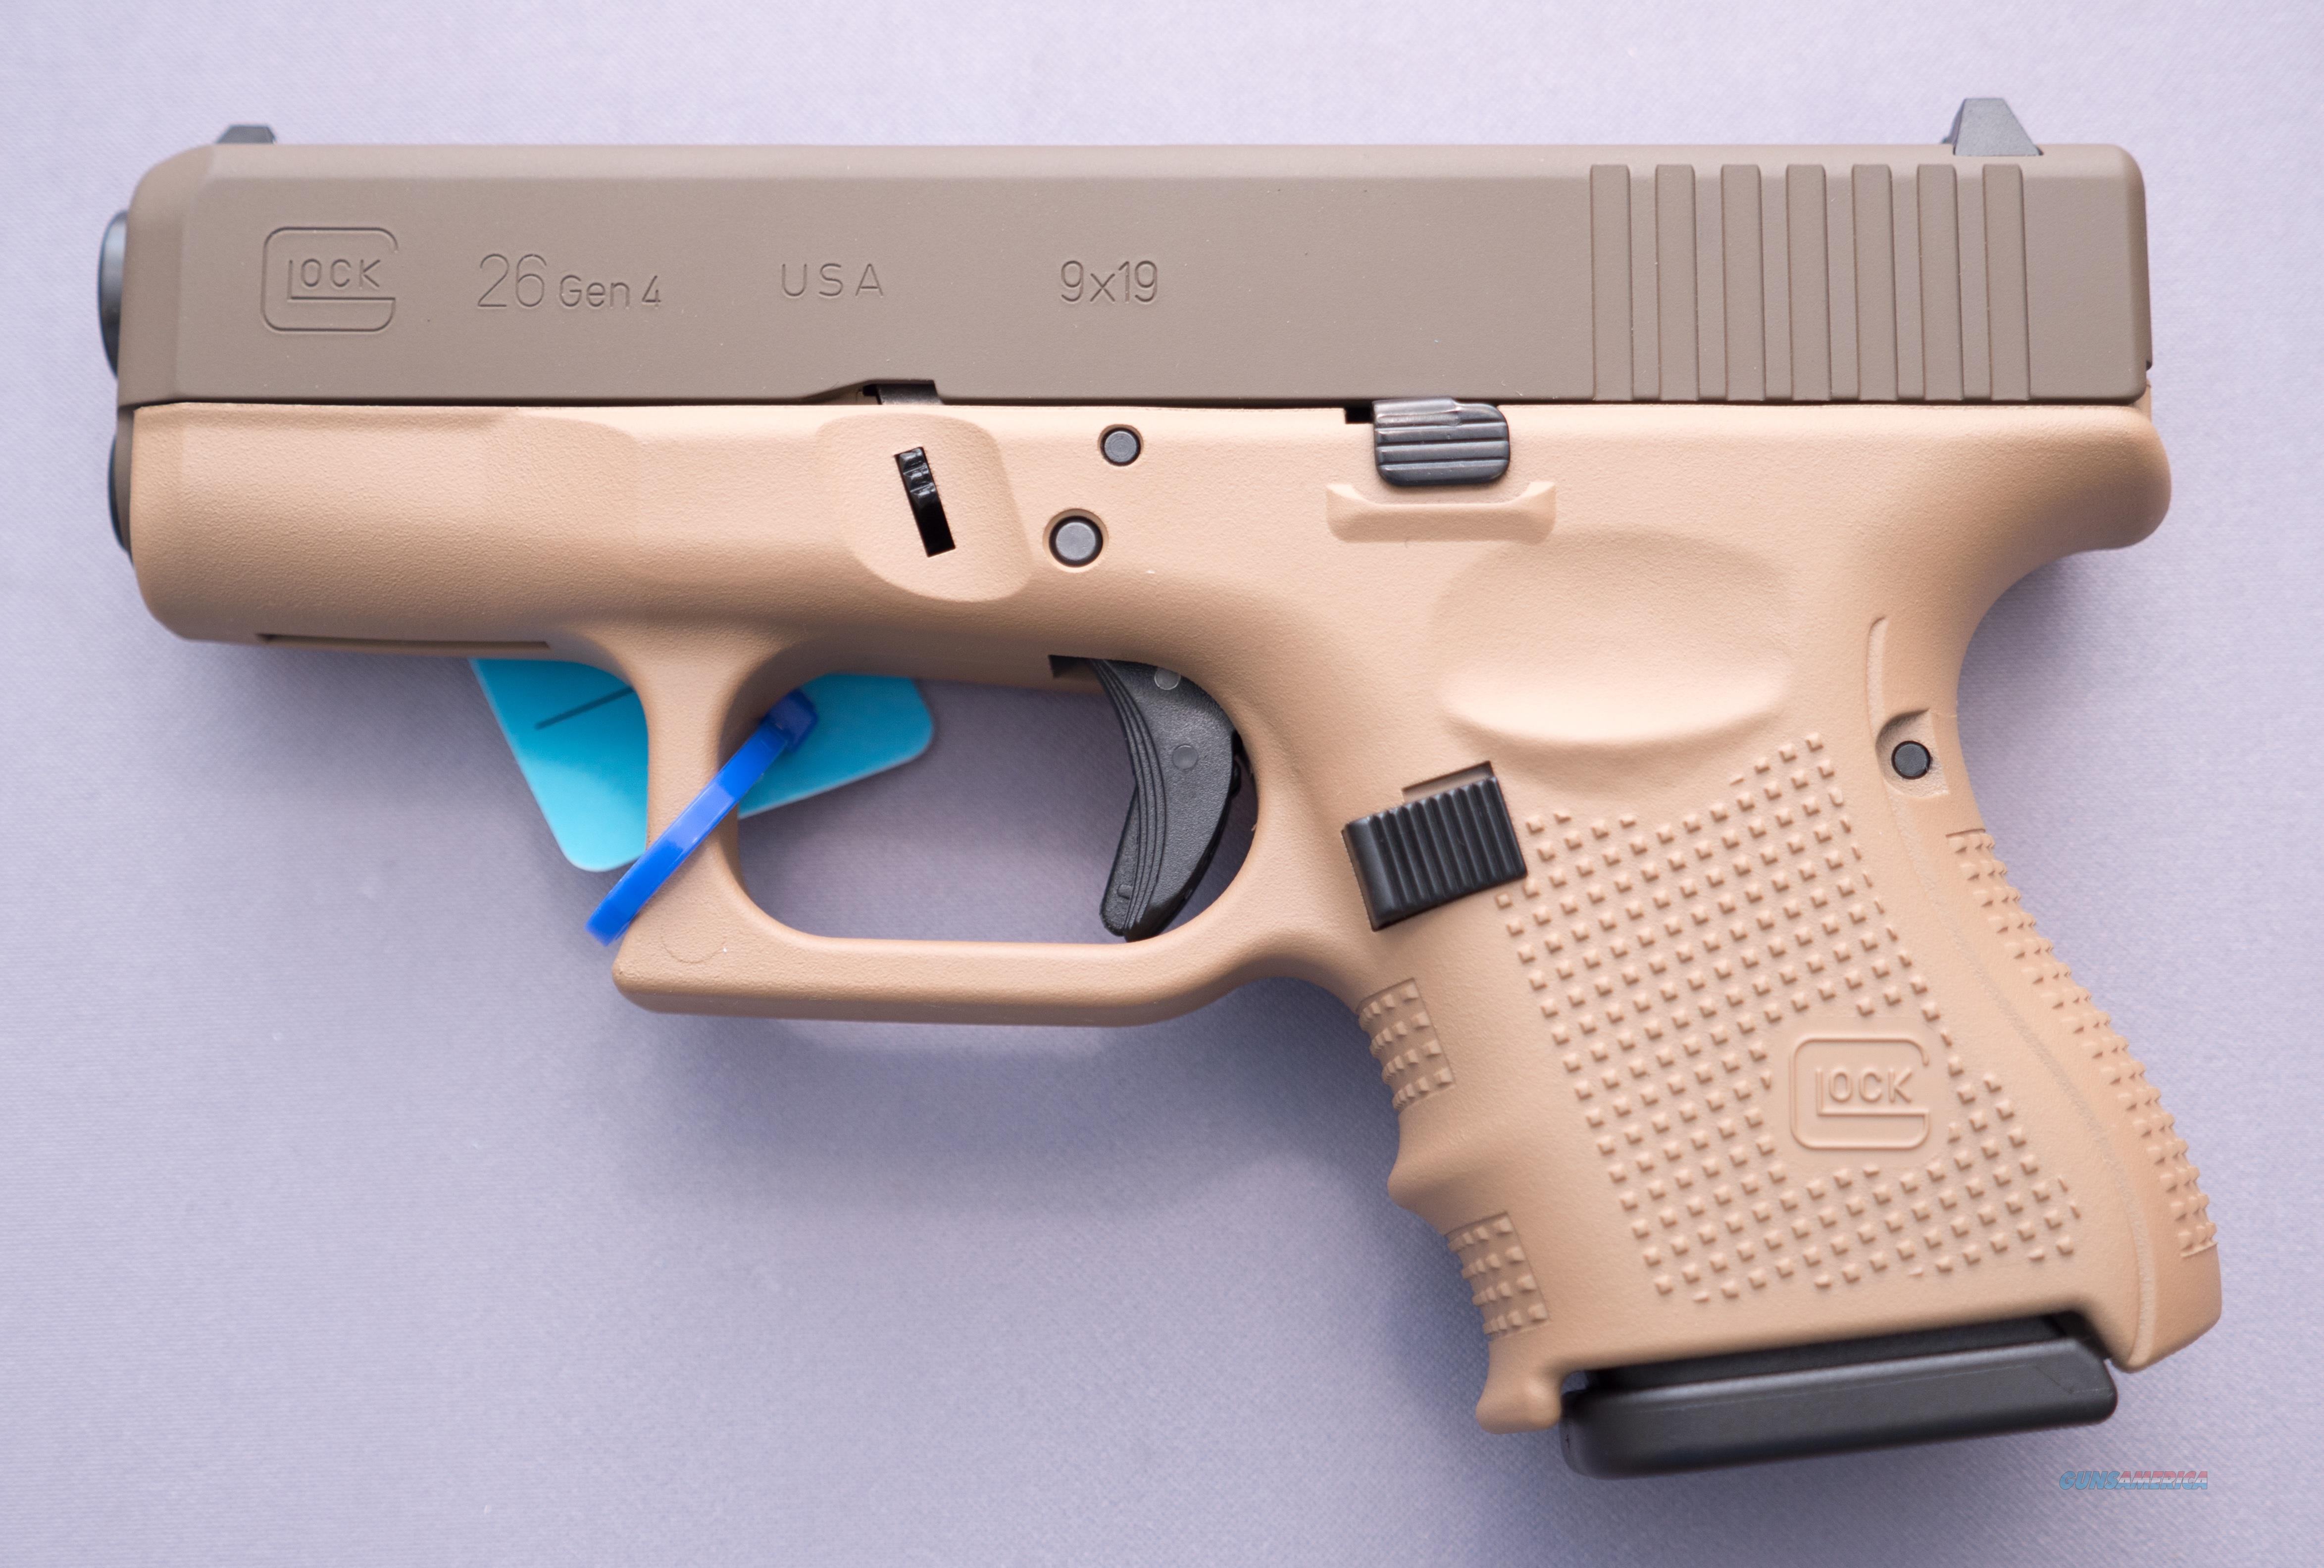 GLOCK 26 Gen4 9x19 10+1 Cerakote Patriot Brown Free Shipping   NO Credit Card Fees  Guns > Pistols > Glock Pistols > 26/27